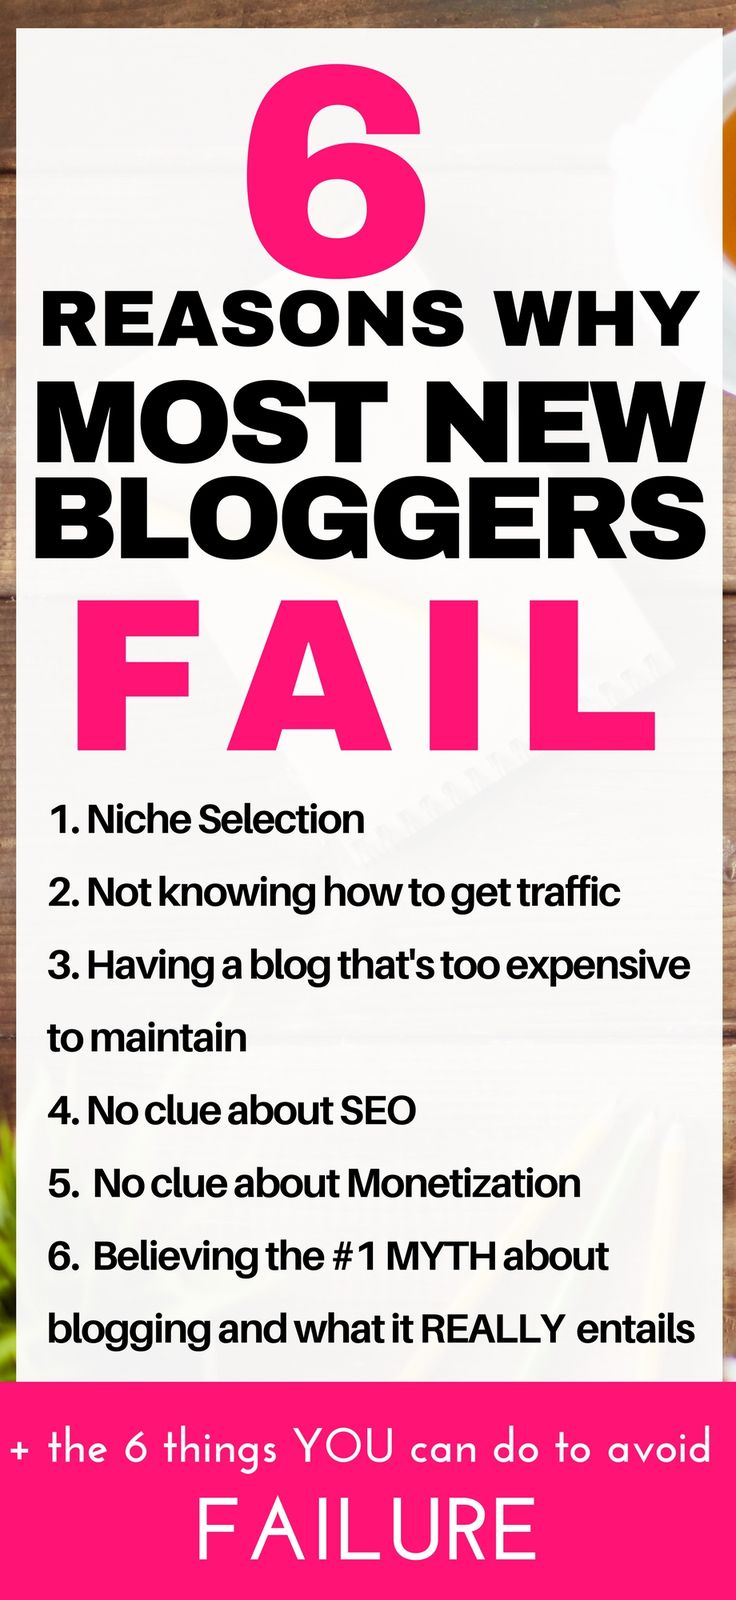 6 Must read blogging tips that you must know if you want to have a successful blog. Blogging for beginners tips and tricks I wish I know when I started my first blog and FAILED! Read this to avoid failure as a new blogger